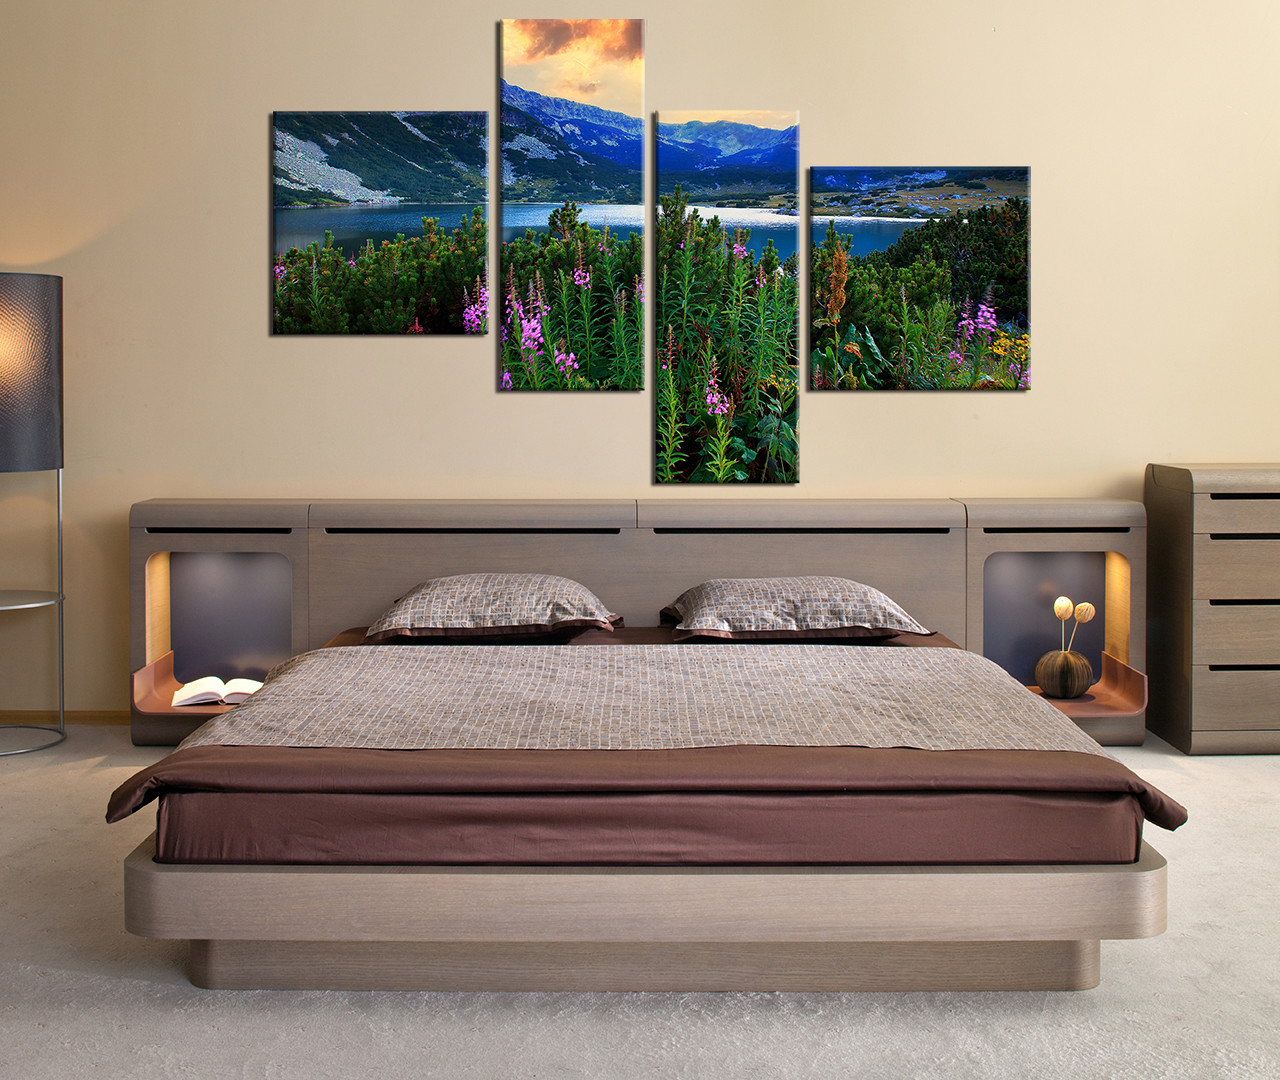 bedroom decor 4 piece wall art blue mountain pictures landscape art mountain - Multi Bedroom Decor